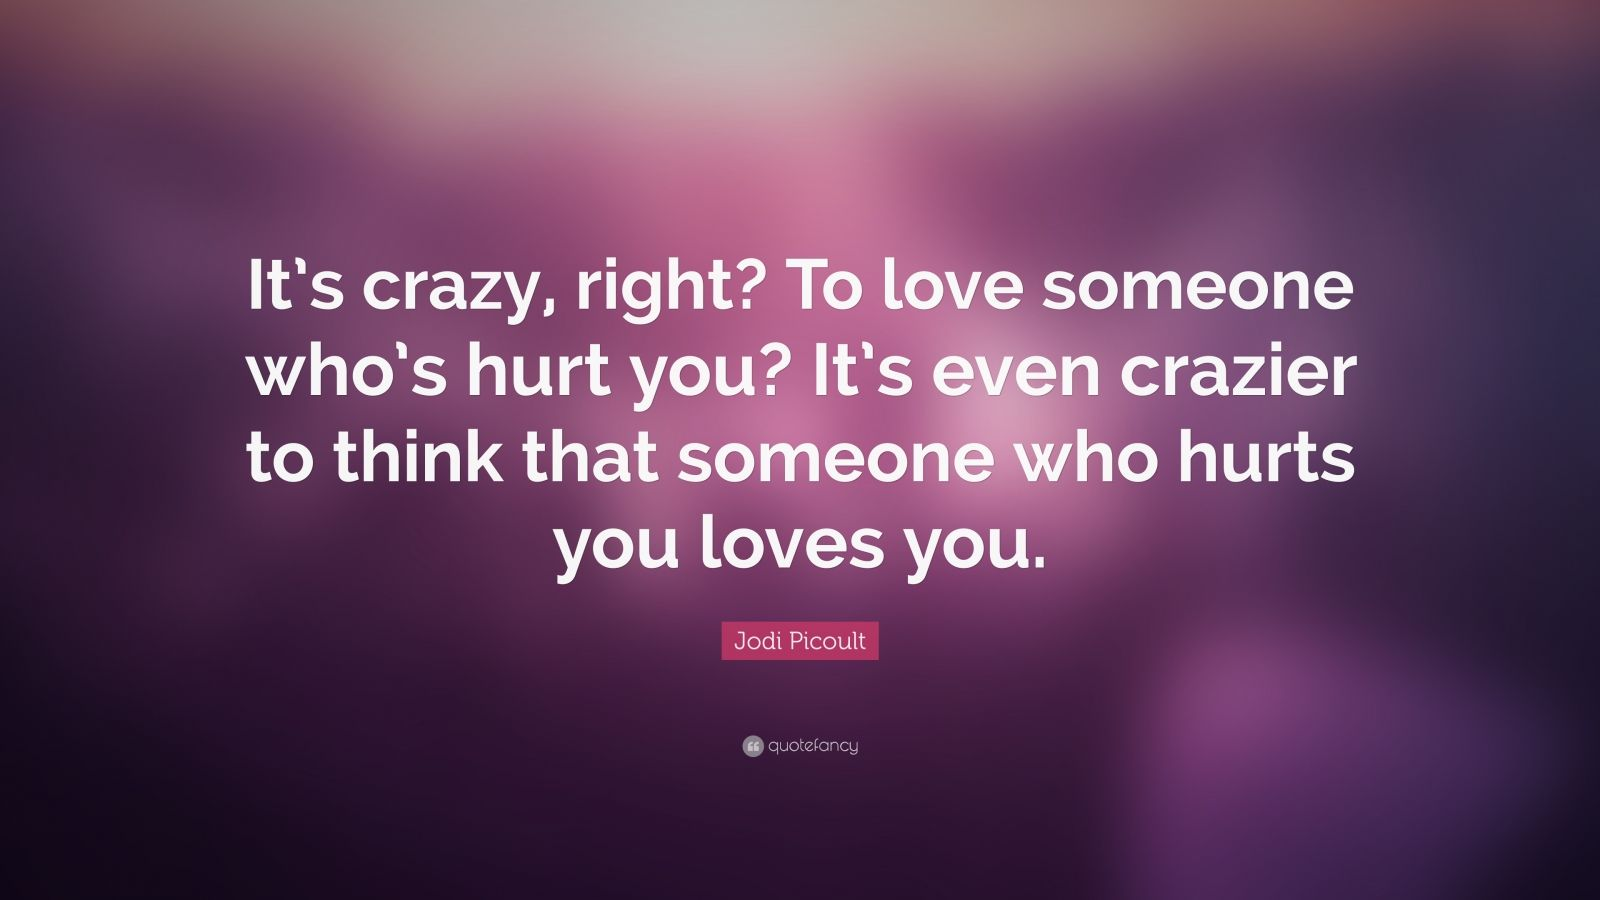 "Jodi Picoult Quote: ""It's crazy, right? To love someone who's hurt you? It's even crazier to think that someone who hurts you loves you."""